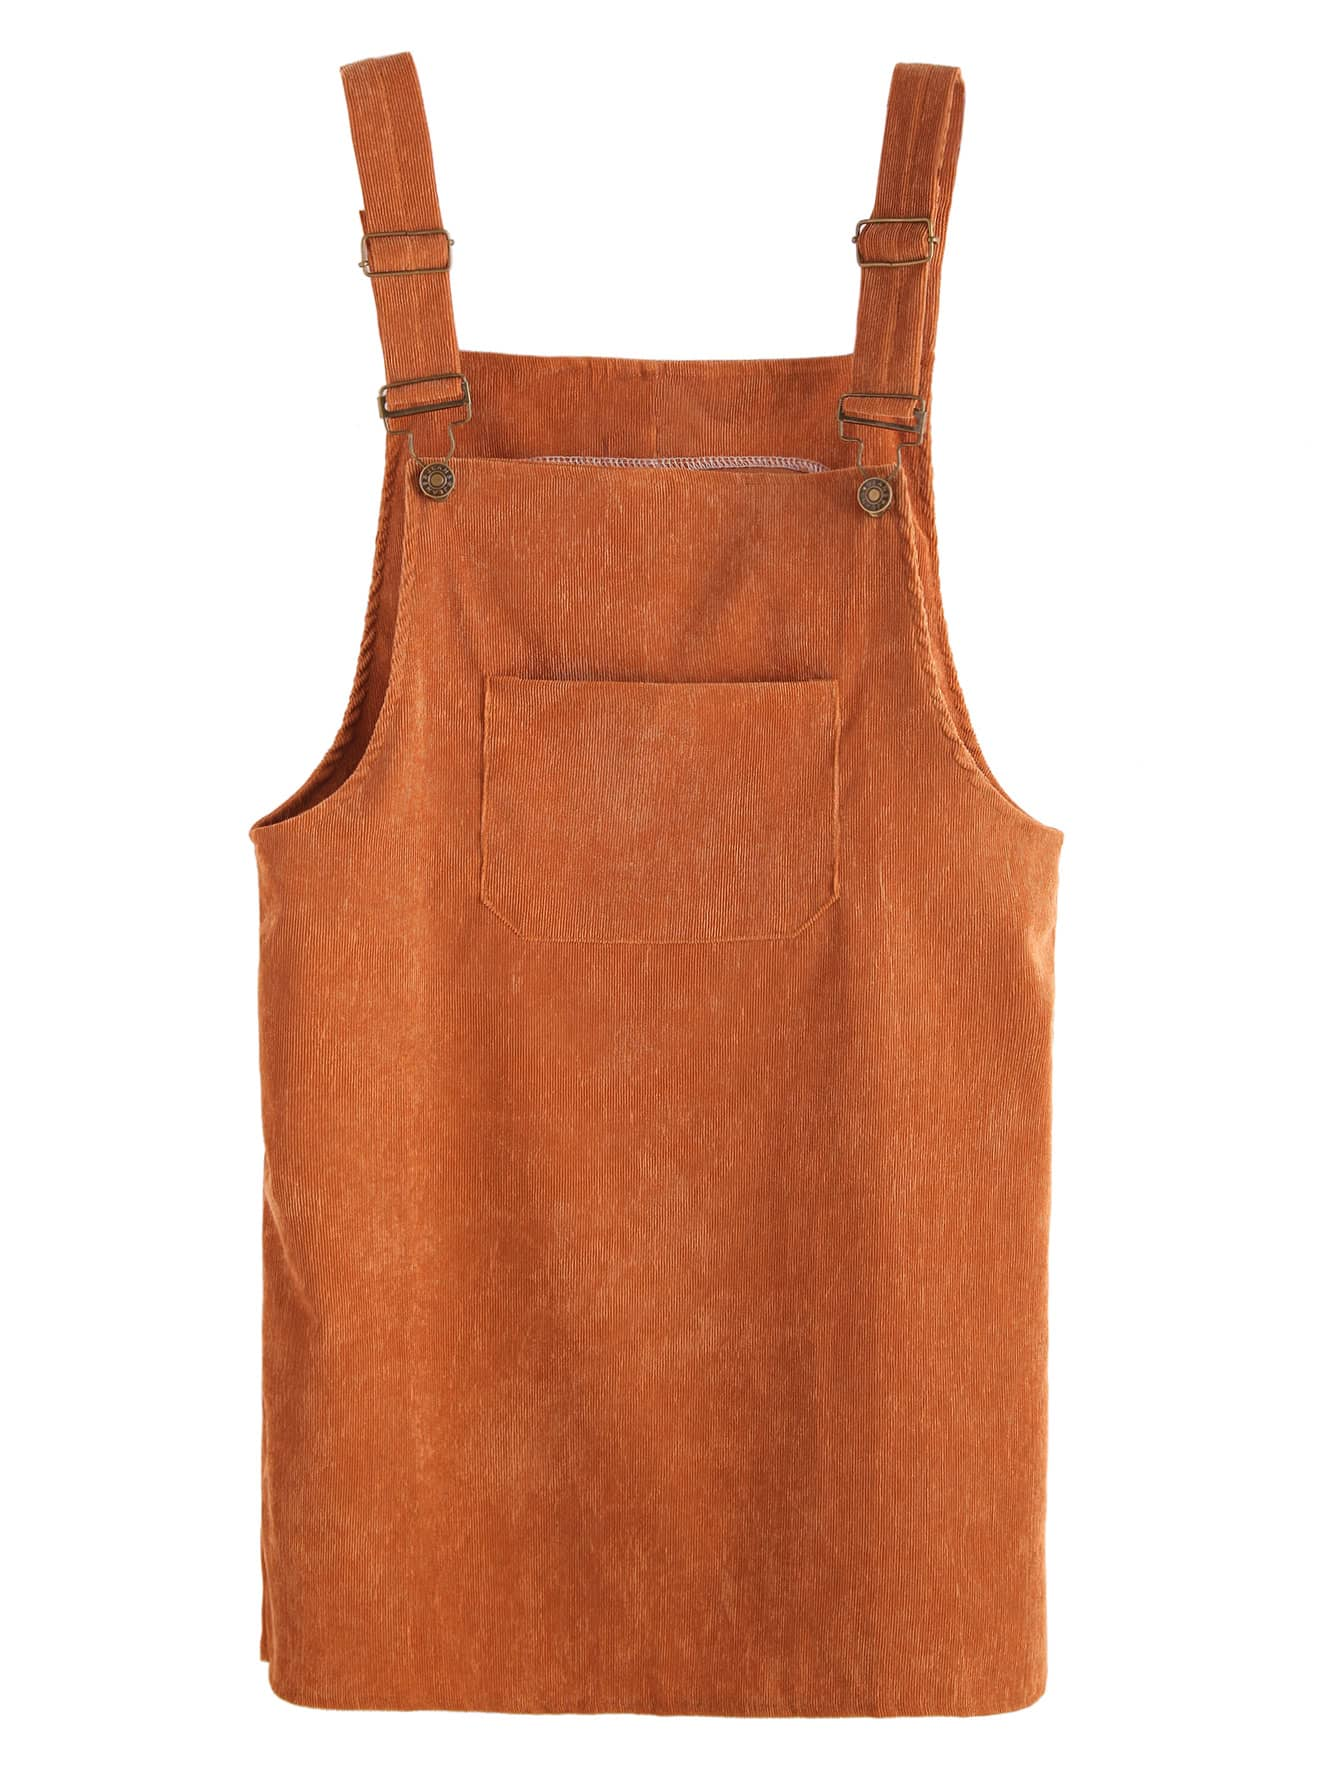 Corduroy Dungaree Dress With Pocket dress160916106